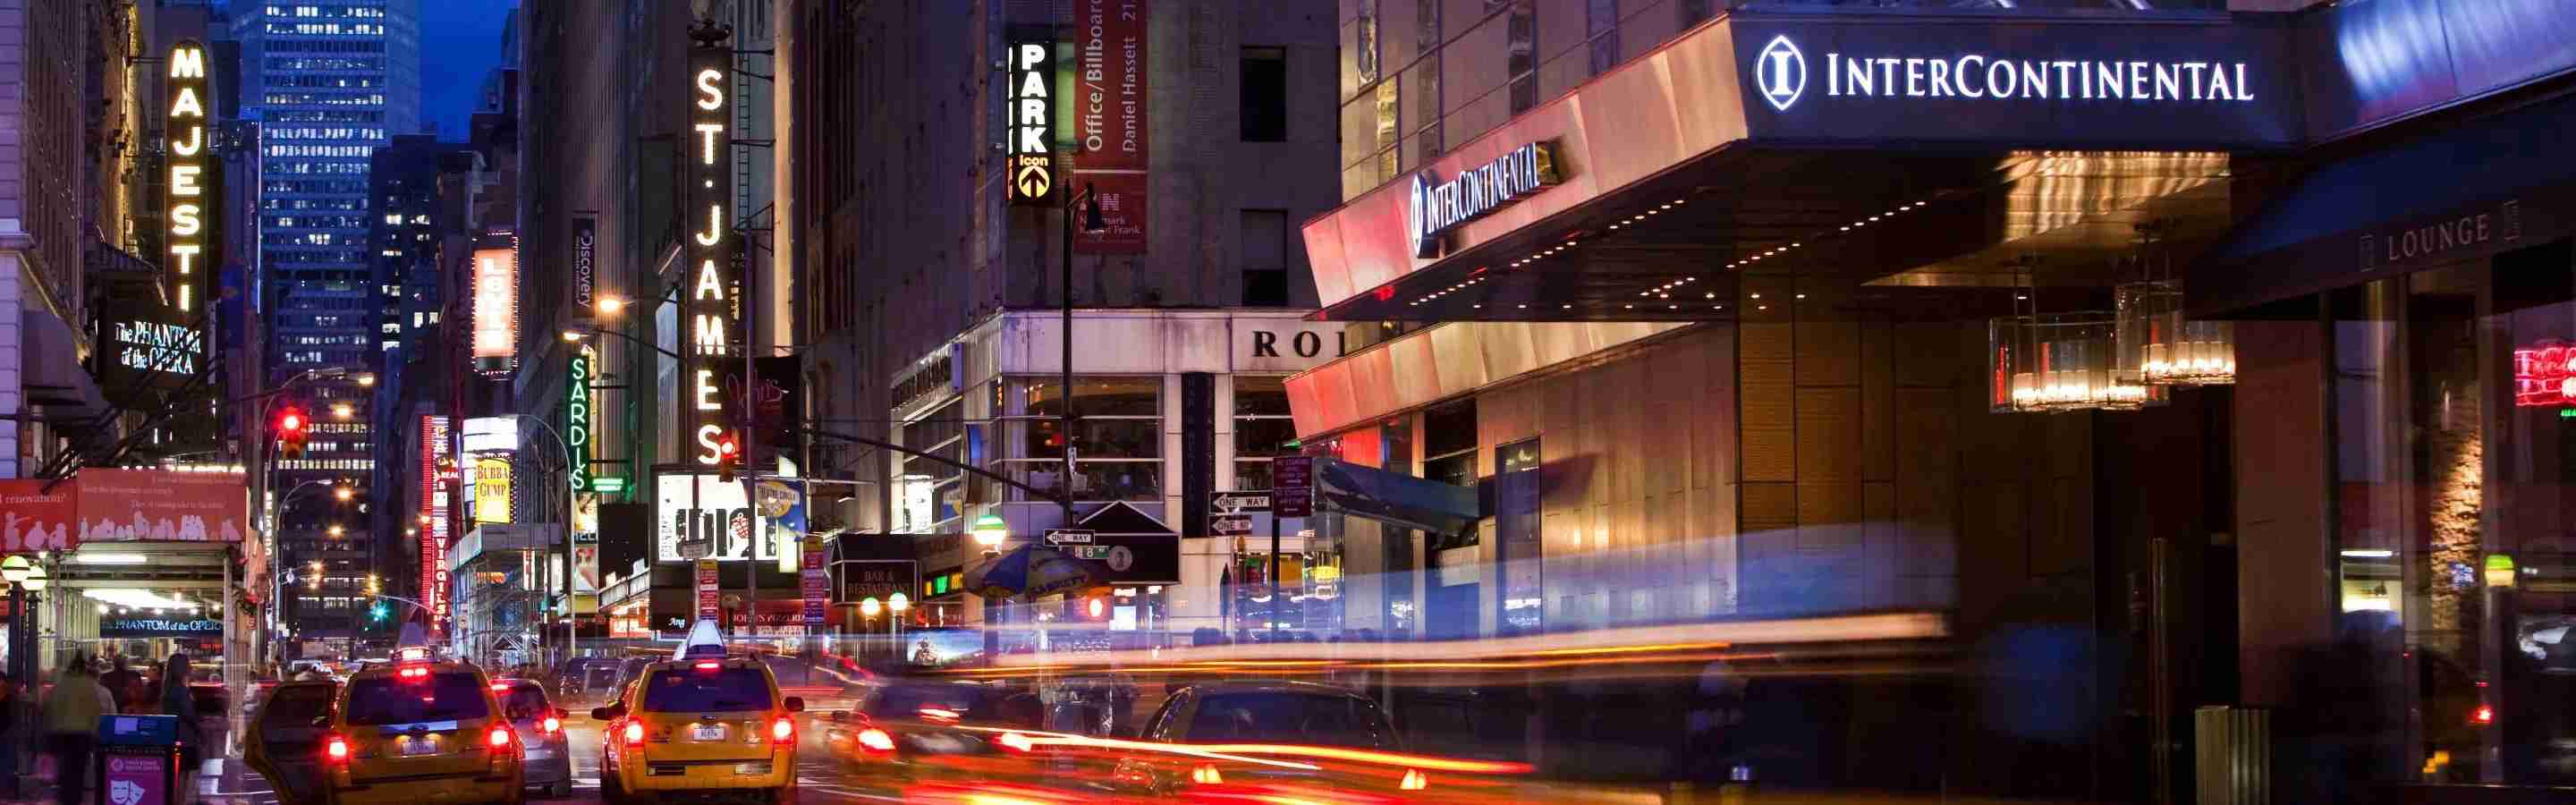 InterContinental New York Times Square exterior